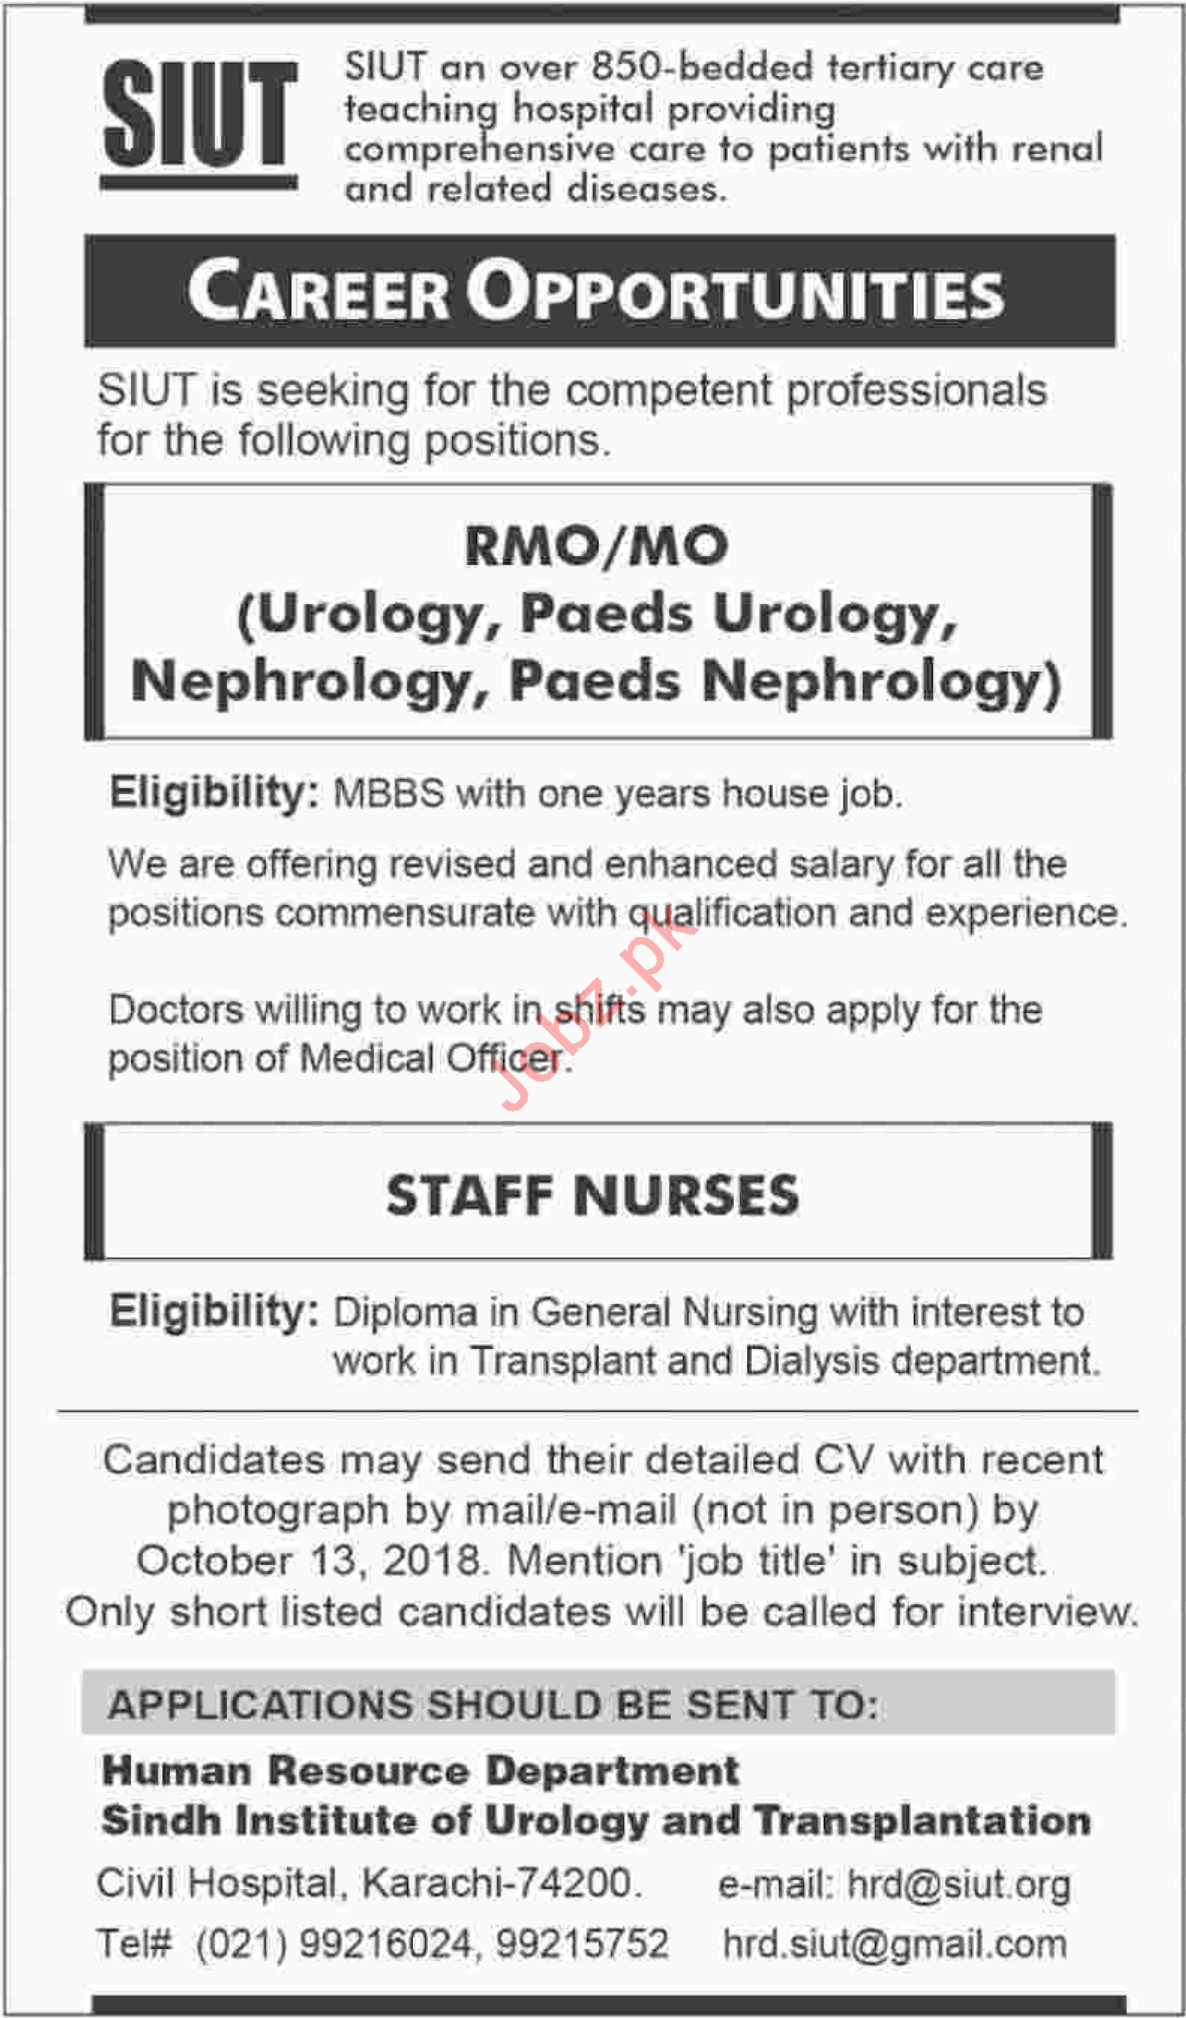 SIUT Staff Nurses Job Opportunities